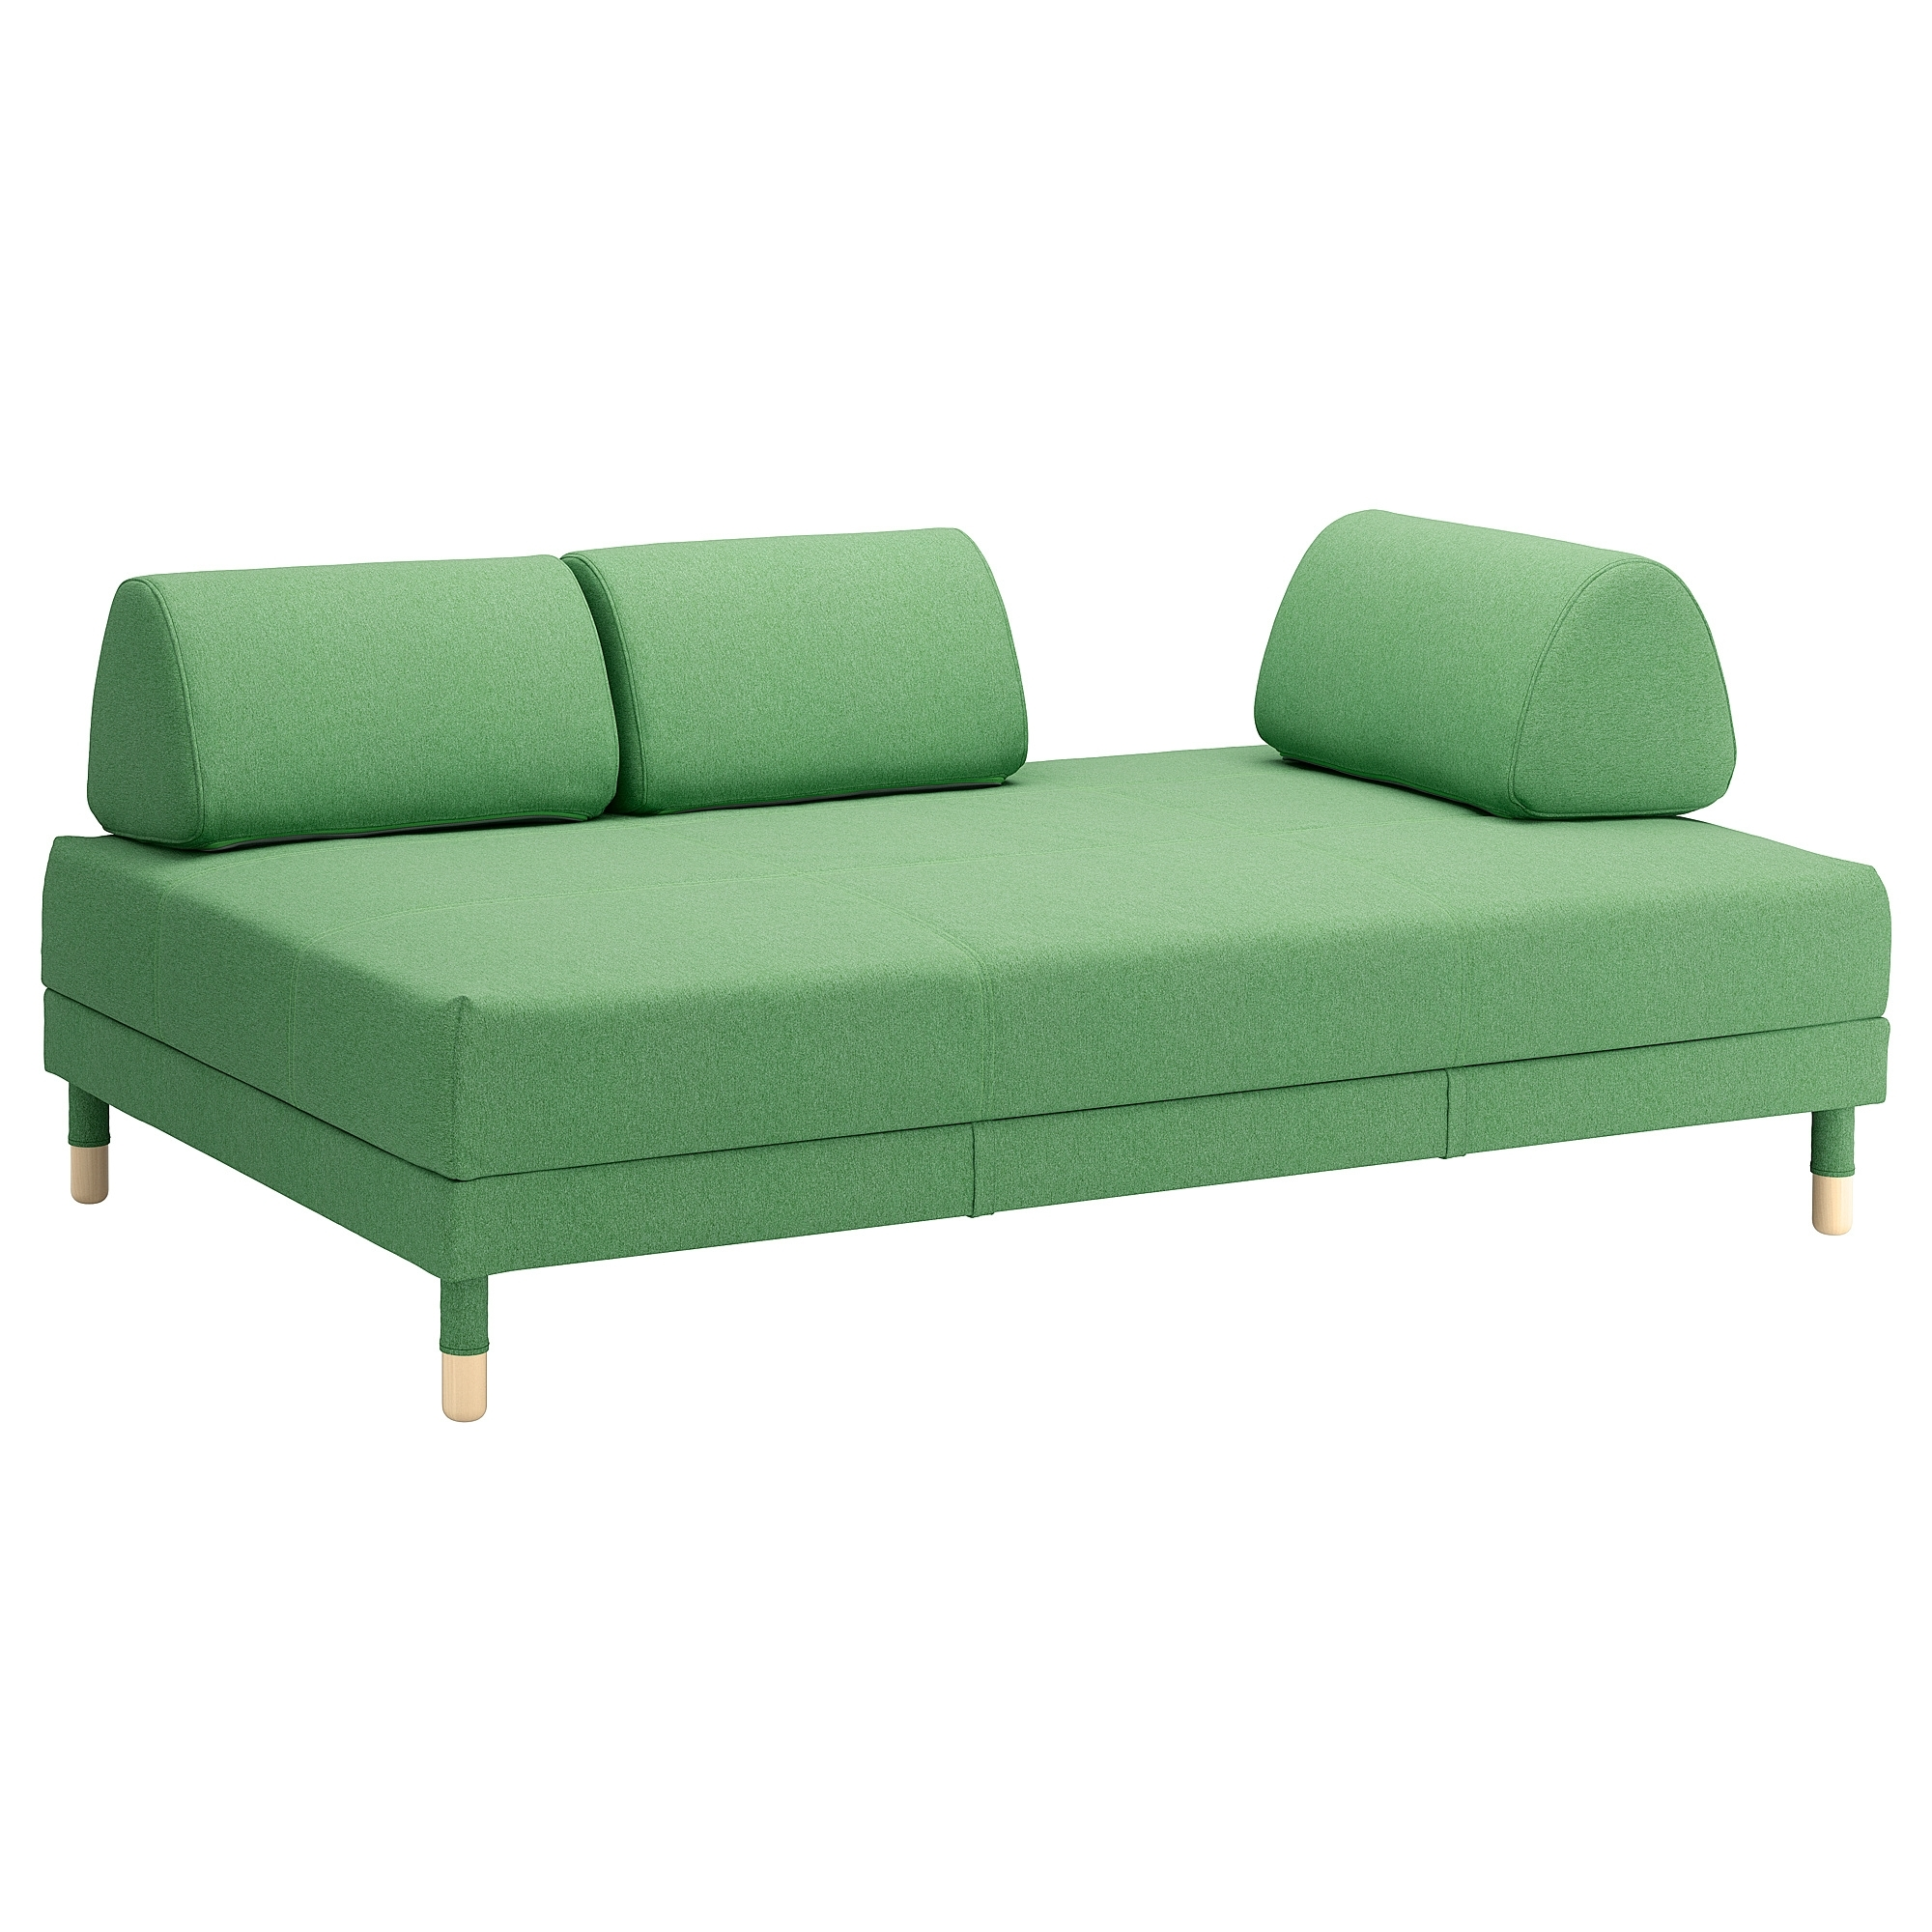 2018 Flottebo Sleeper Sofa – Lysed Green – Ikea Inside Ikea Sofa Beds With Chaise (View 1 of 15)